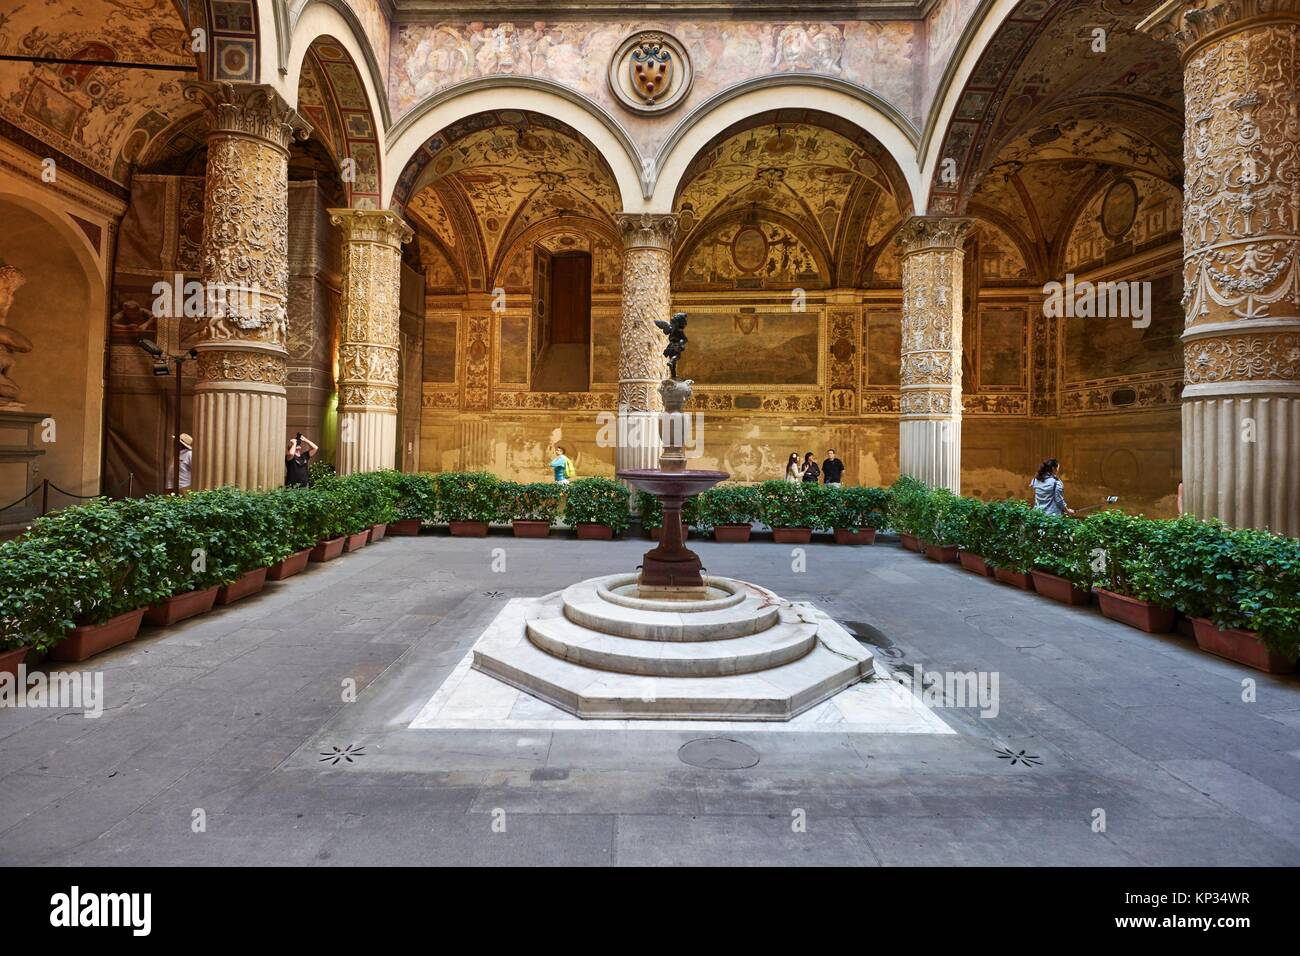 The inner courtyard of the Palazzo Vecchio (Old Palace), Florence, Italy. The Palazzo Vecchio is the town hall of - Stock Image